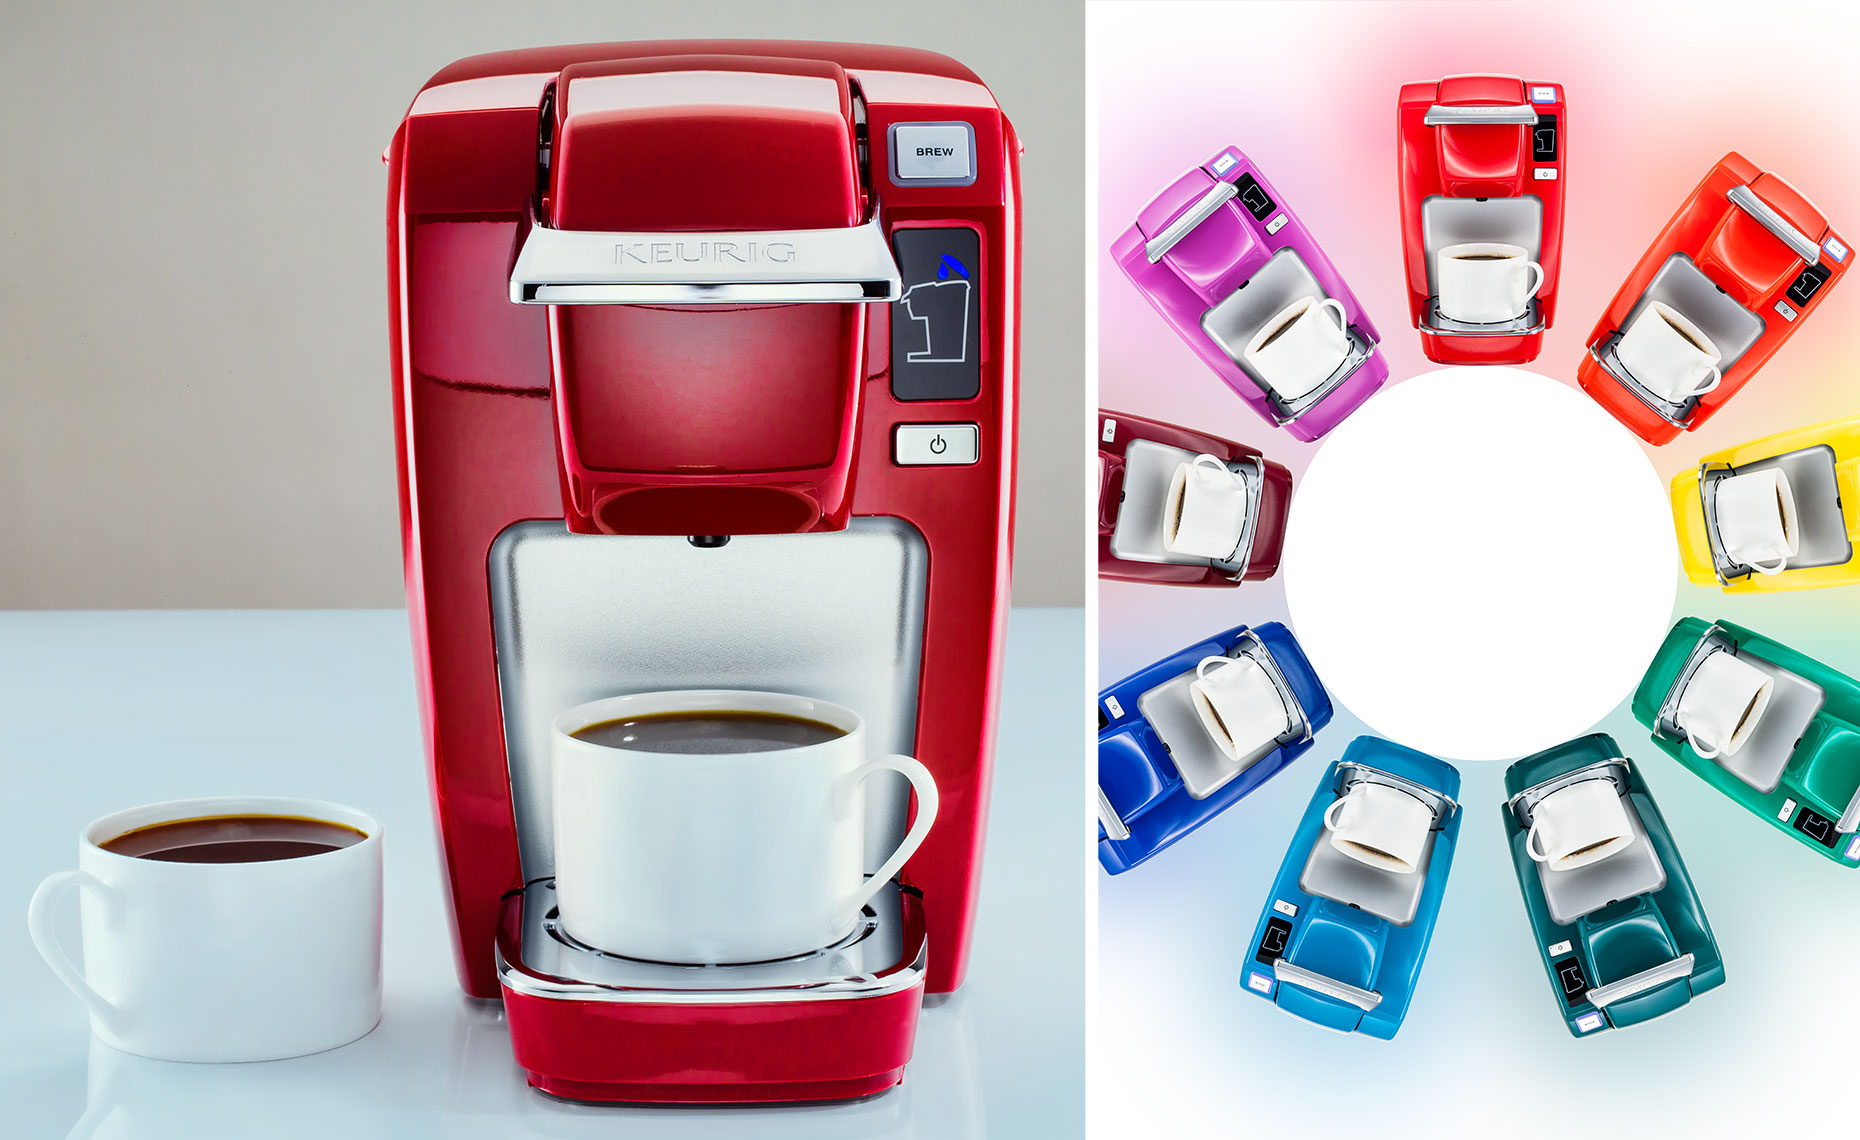 Keurig machine single and circle of multiple machines